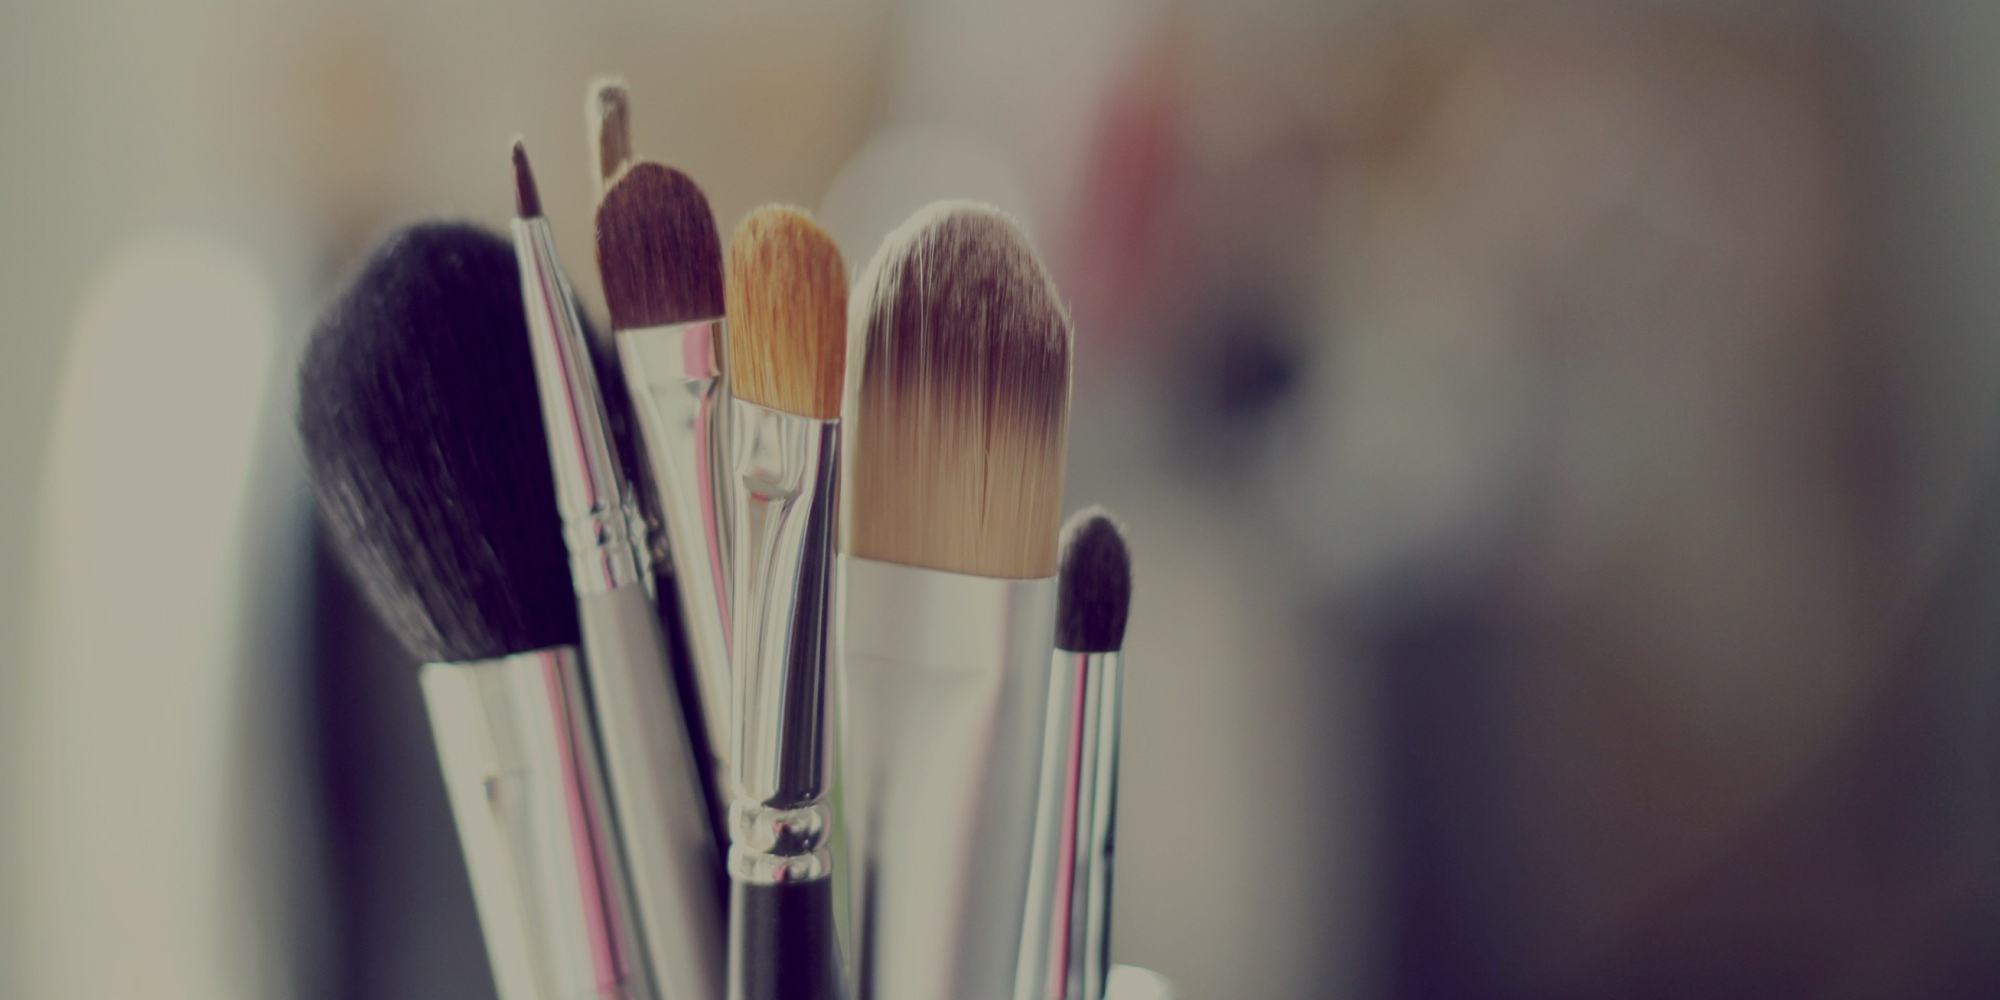 o-MAKEUP-BRUSHES-facebook-2